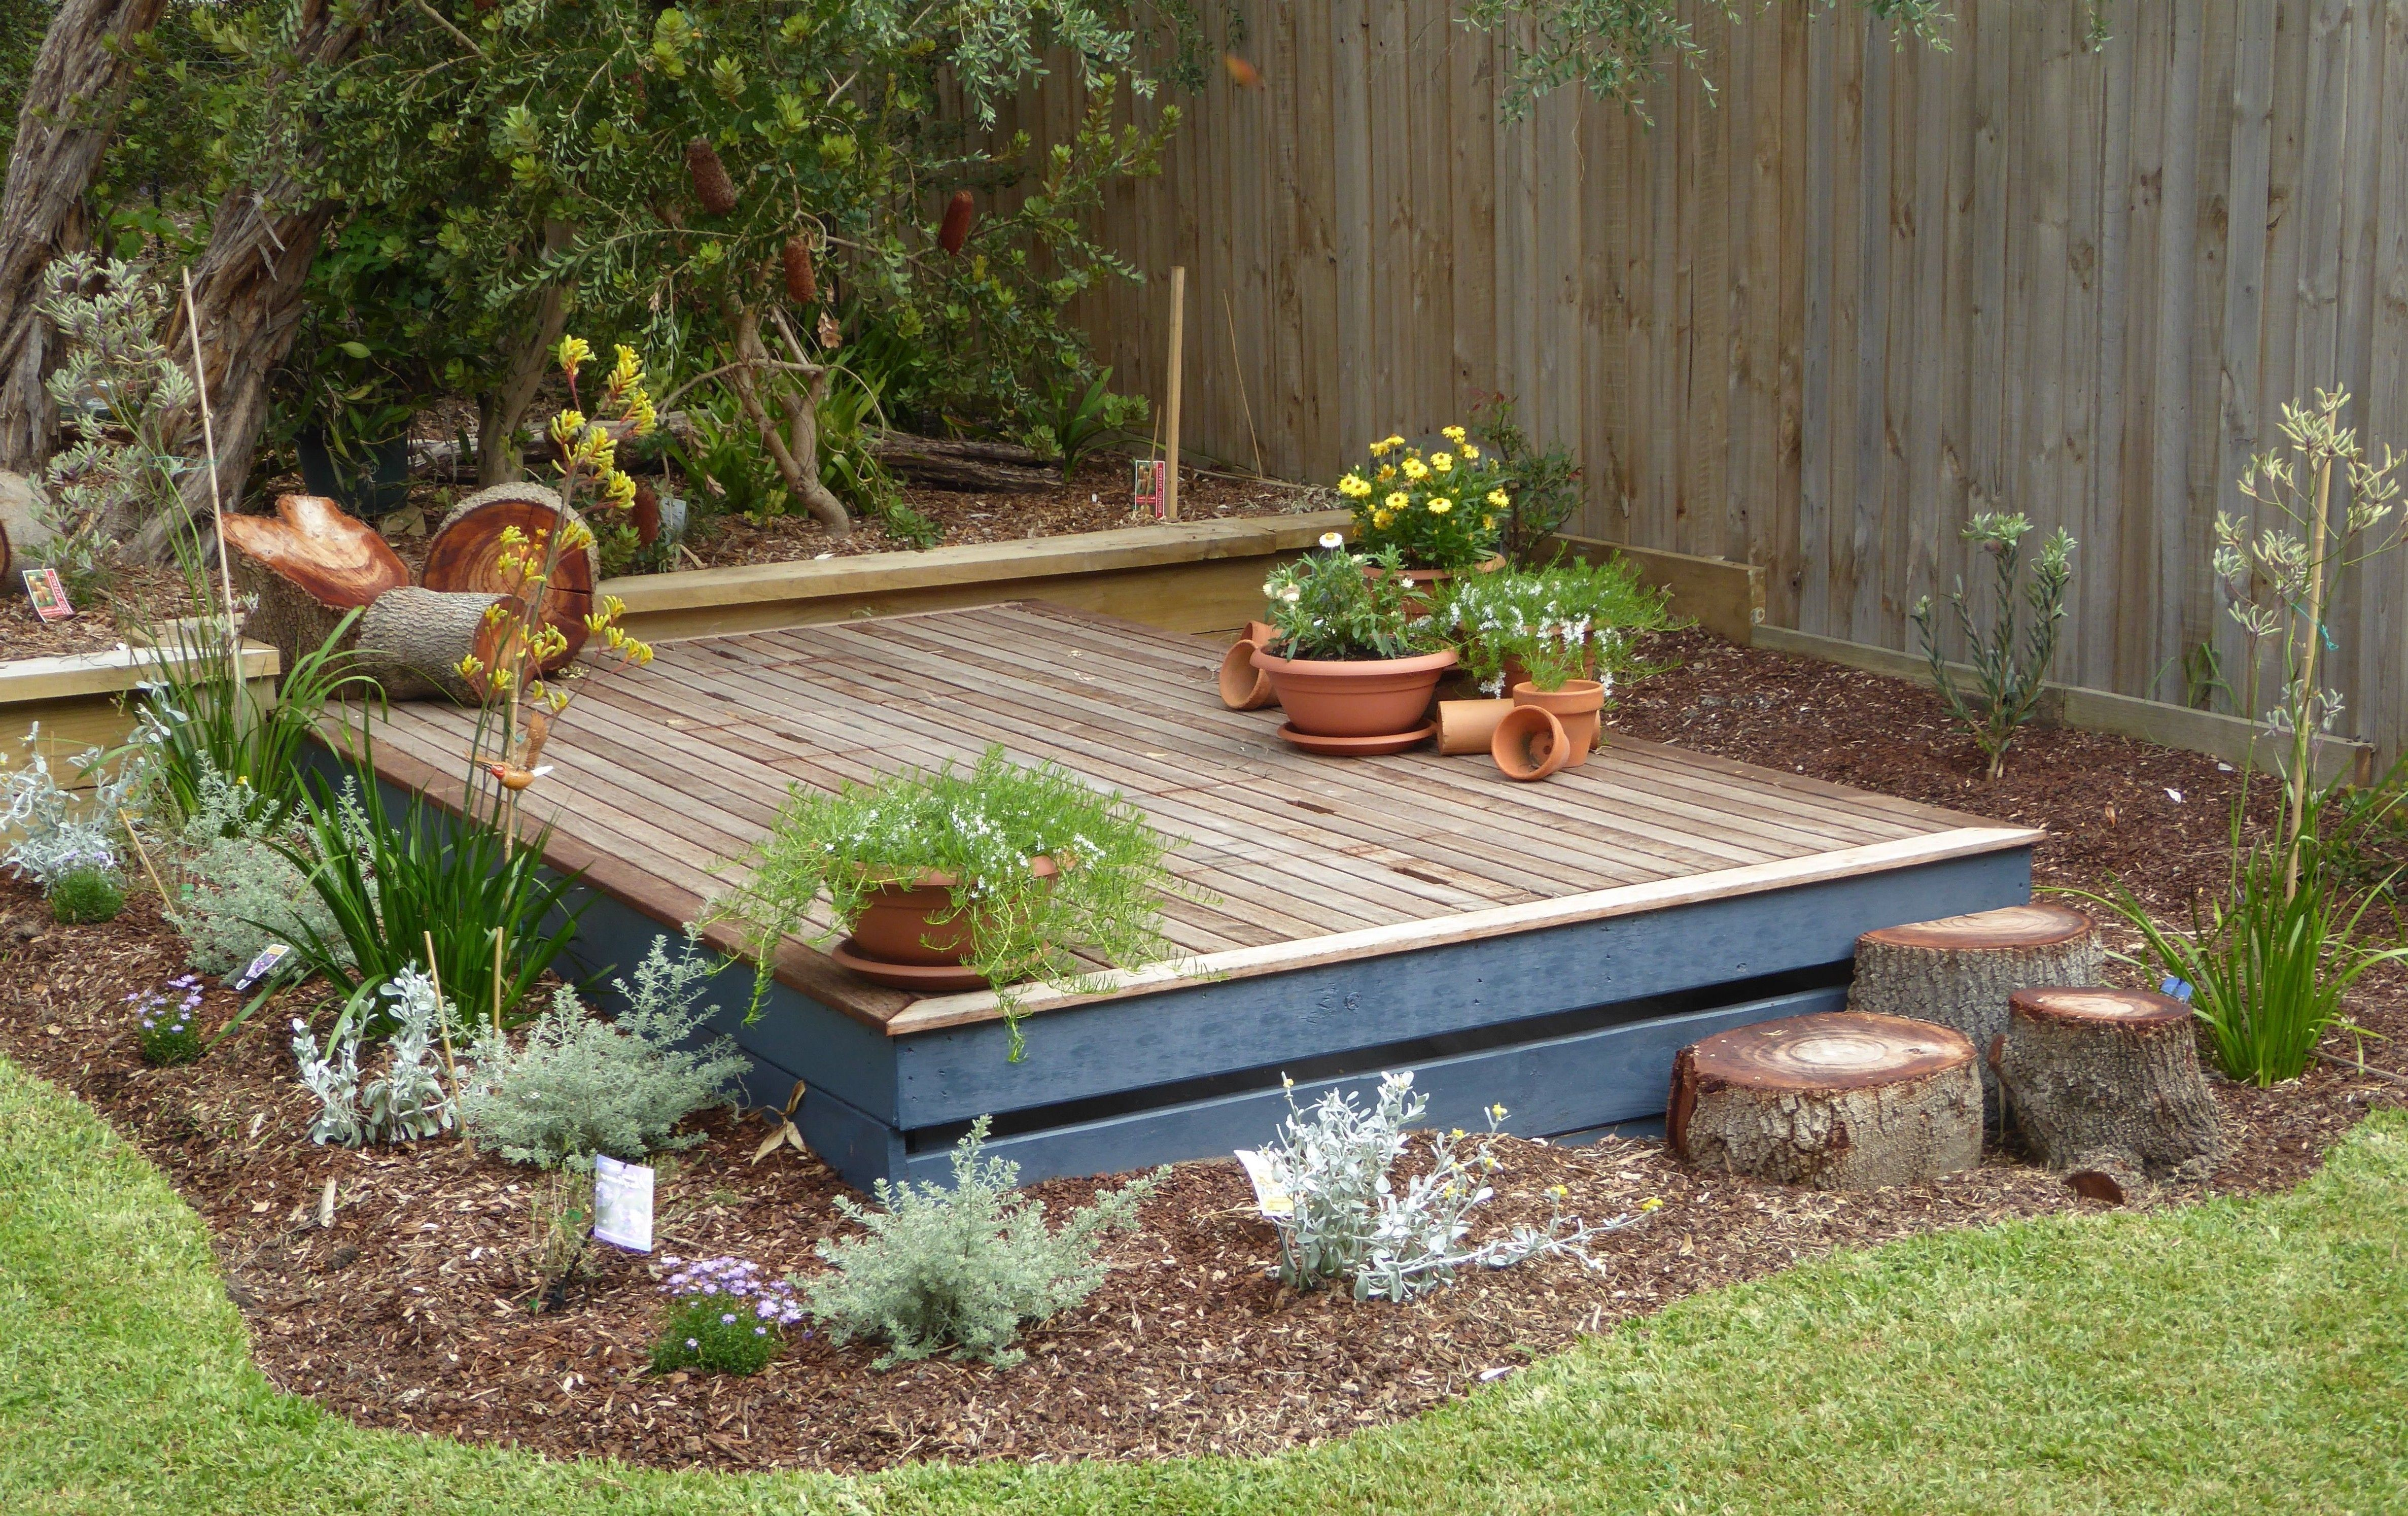 Best Decorative Septic Tank Cover Ideas Septic Tank Covers Septic Tank Design Small Garden Landscape